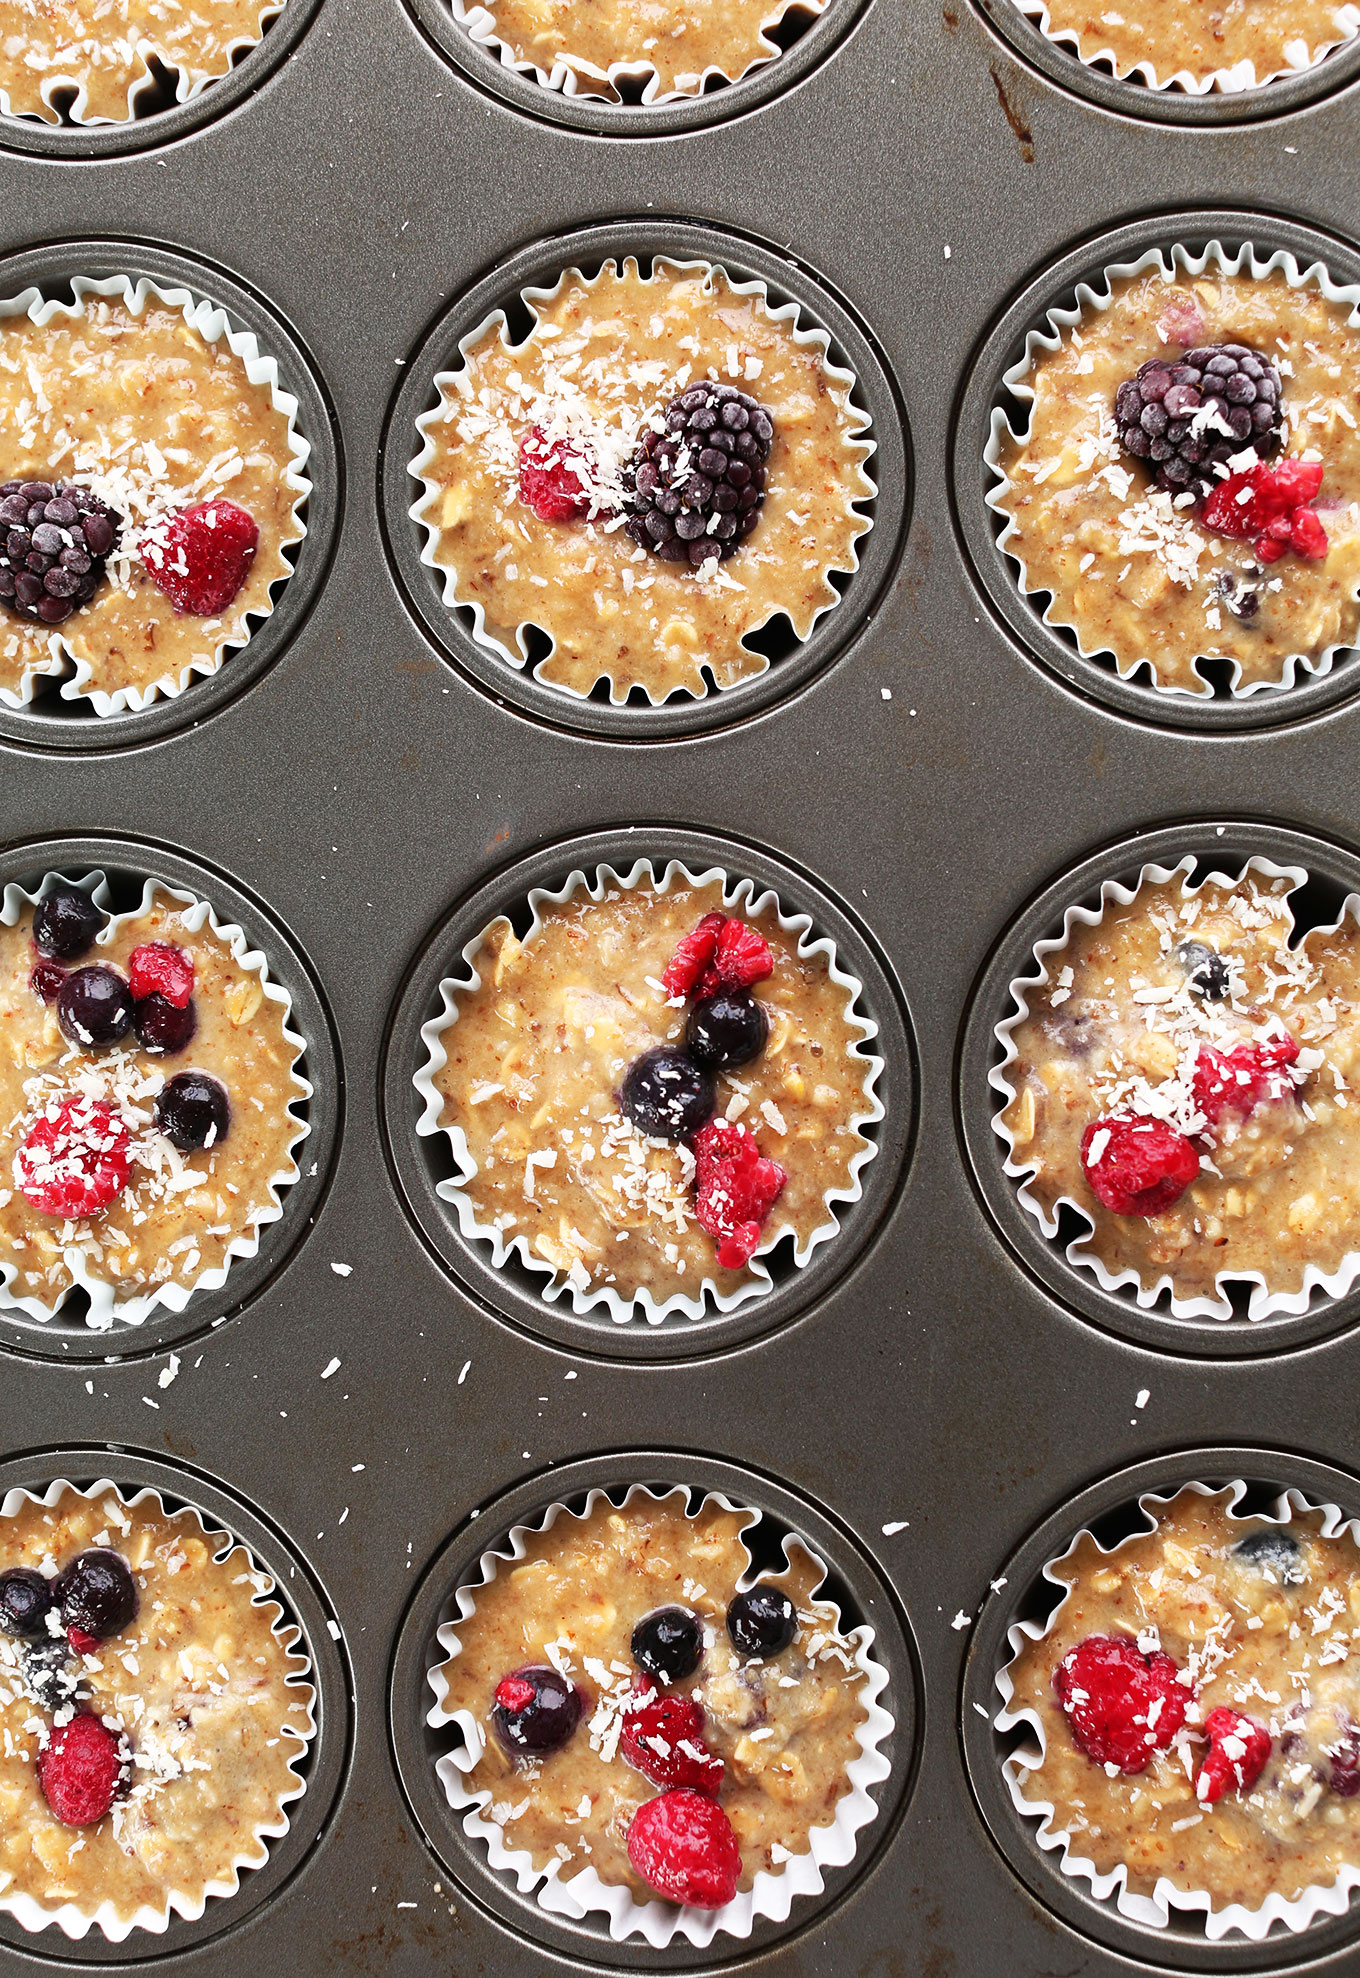 Muffin tin filled with our gluten-free vegan Berry Coconut Muffins recipe